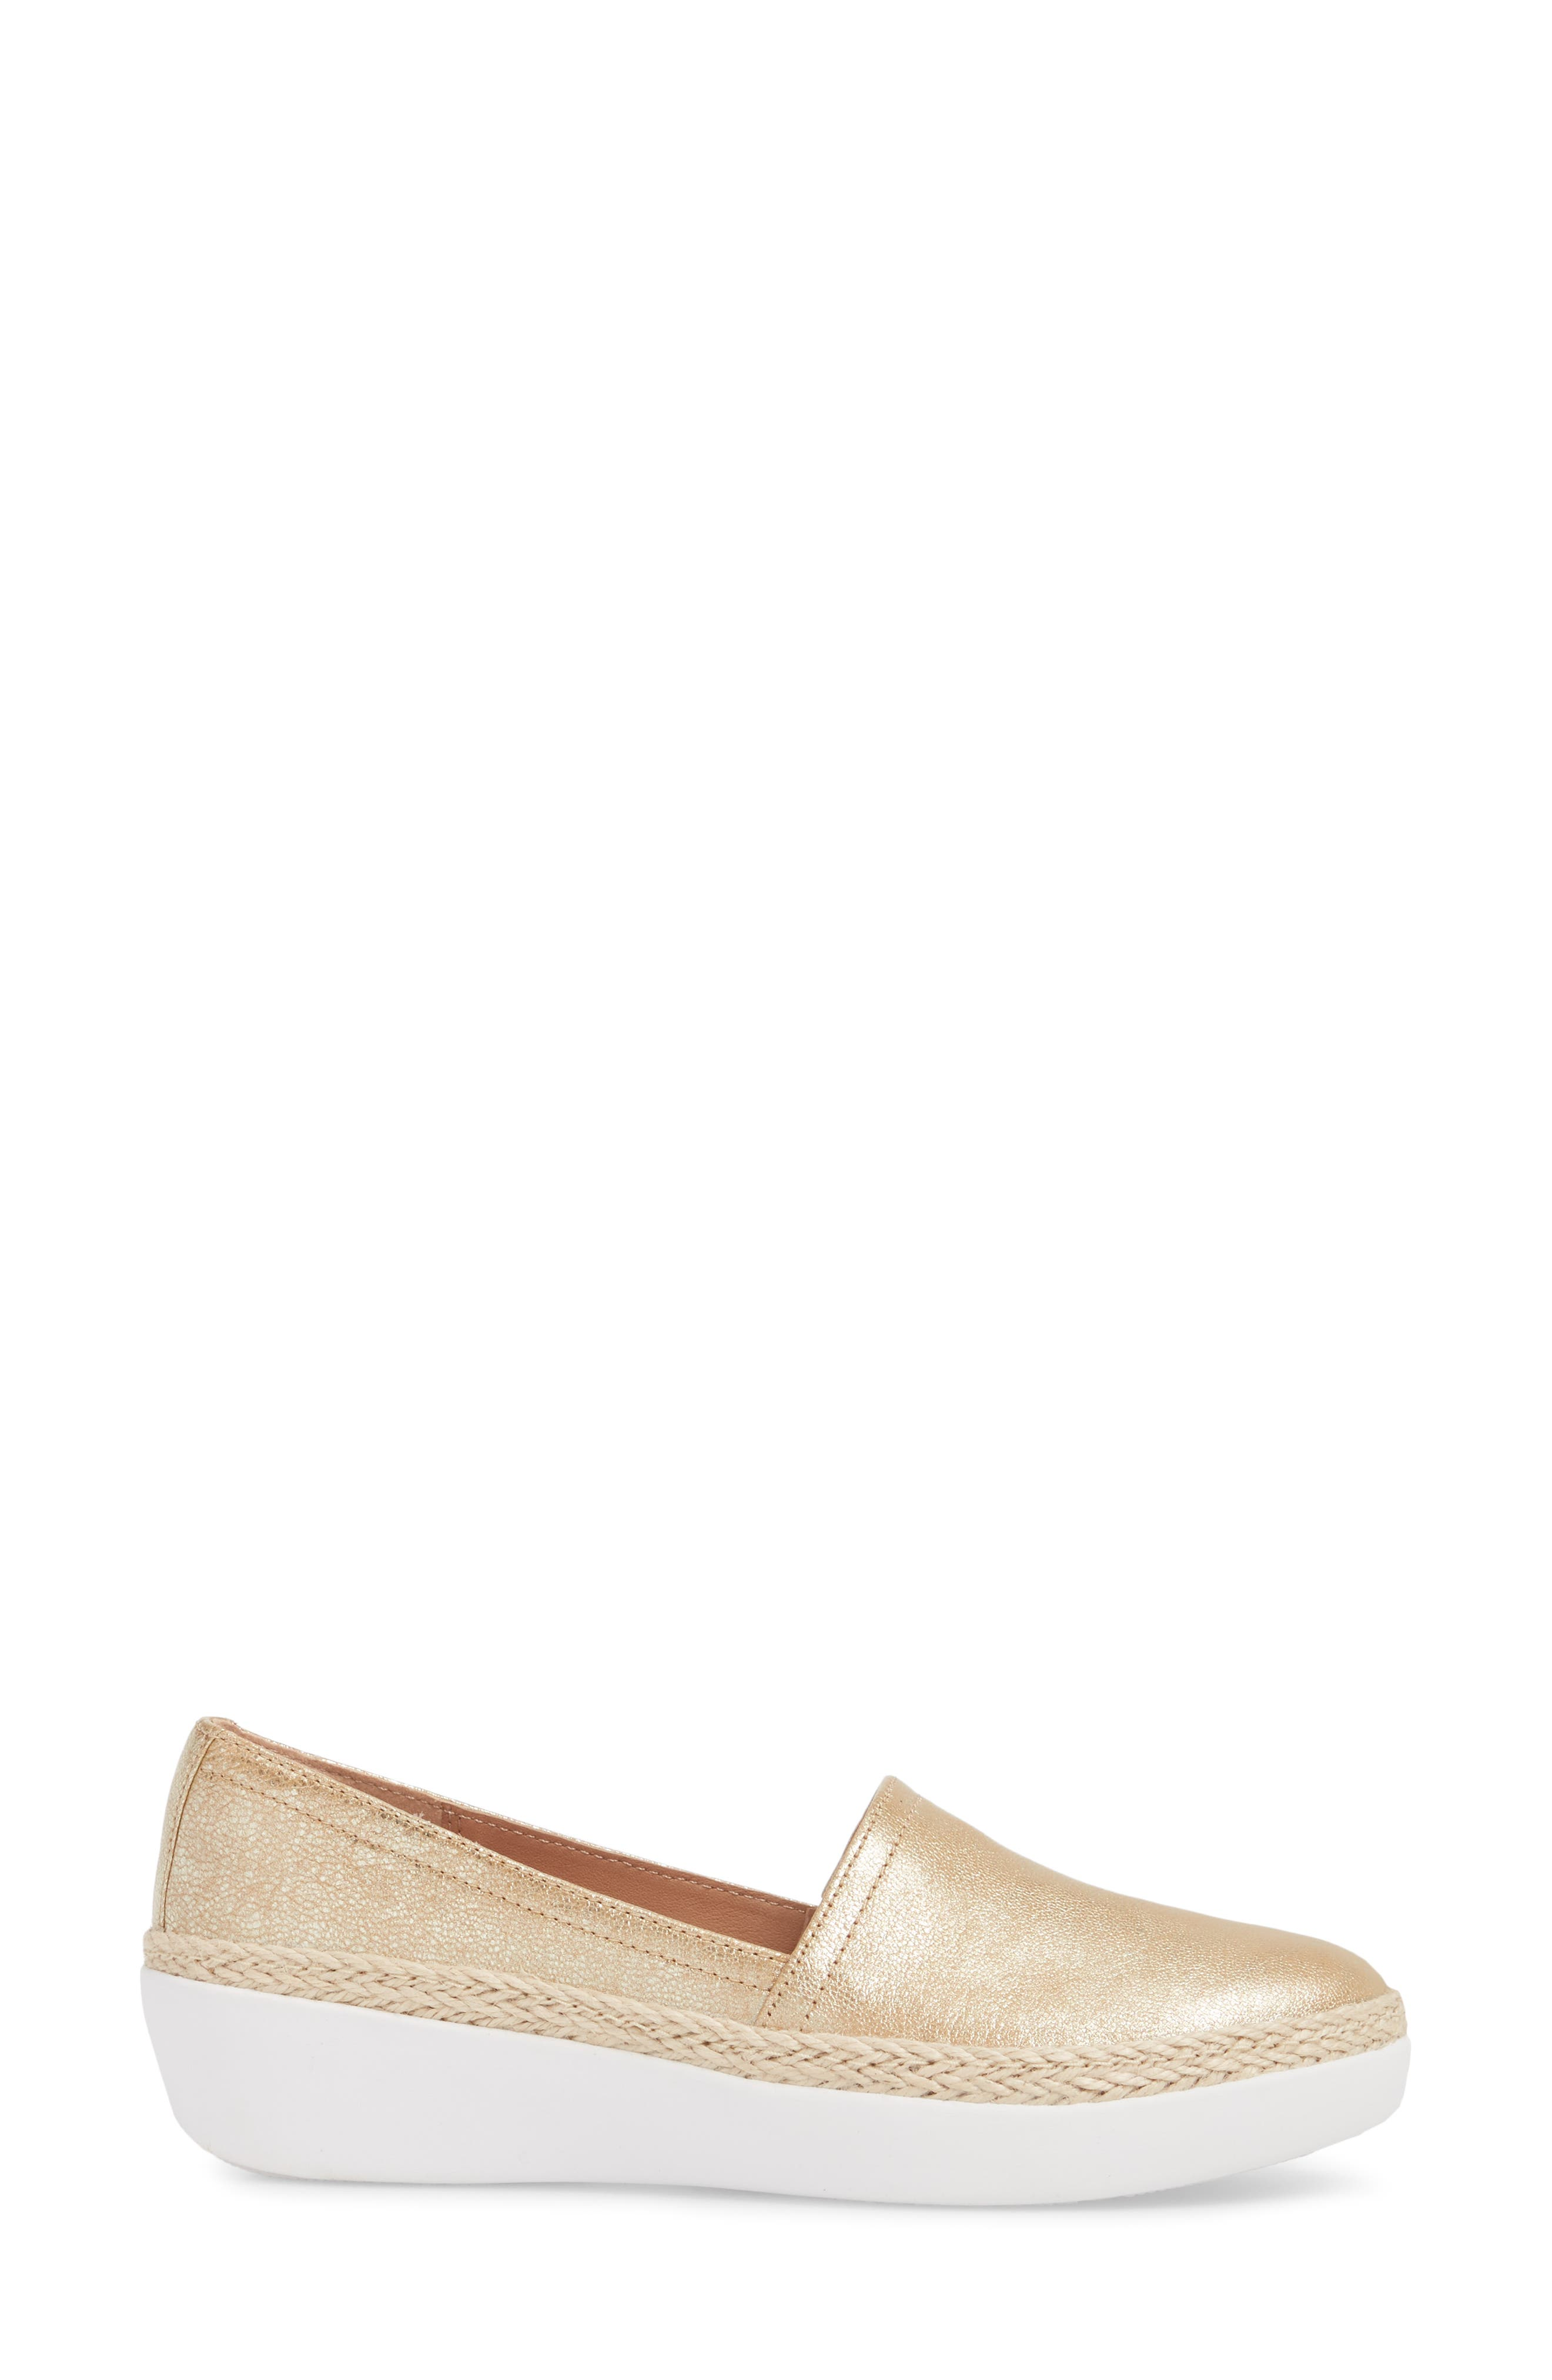 Casa Loafer,                             Alternate thumbnail 3, color,                             Metallic Gold Leather